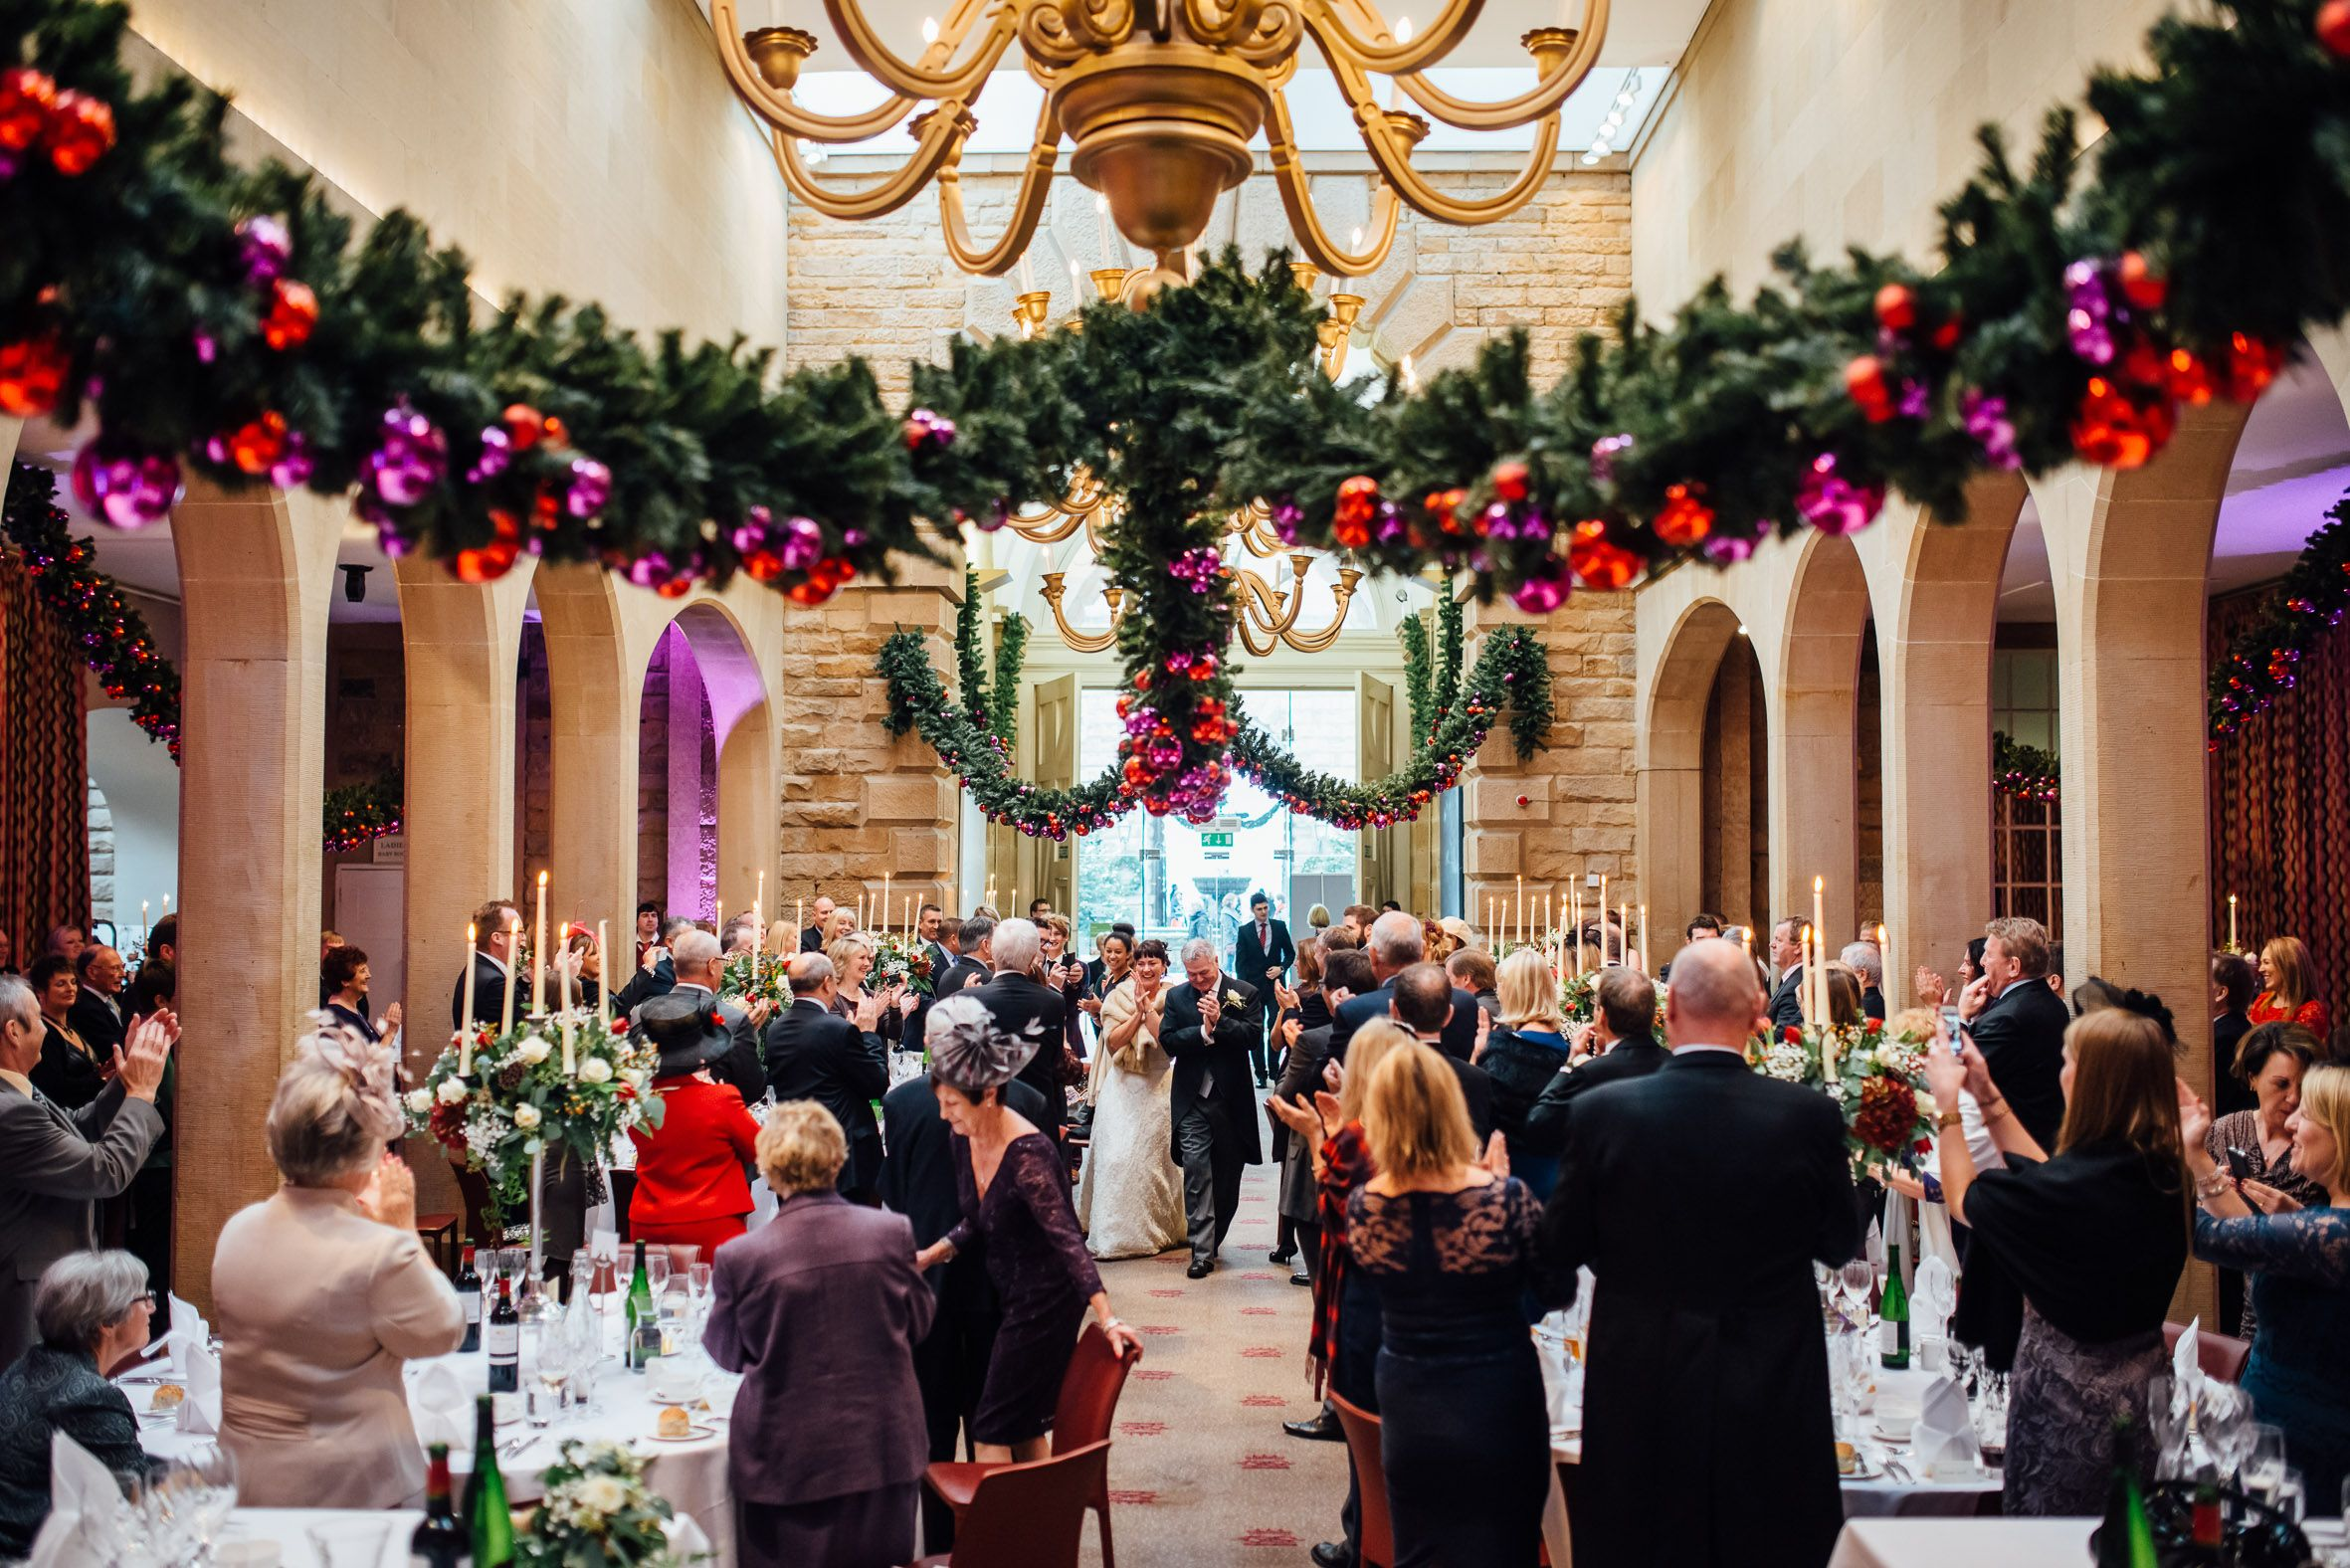 Wedding Chair Covers Derby Plastic Stool Suppliers Chatsworth House Christmas And The Peak